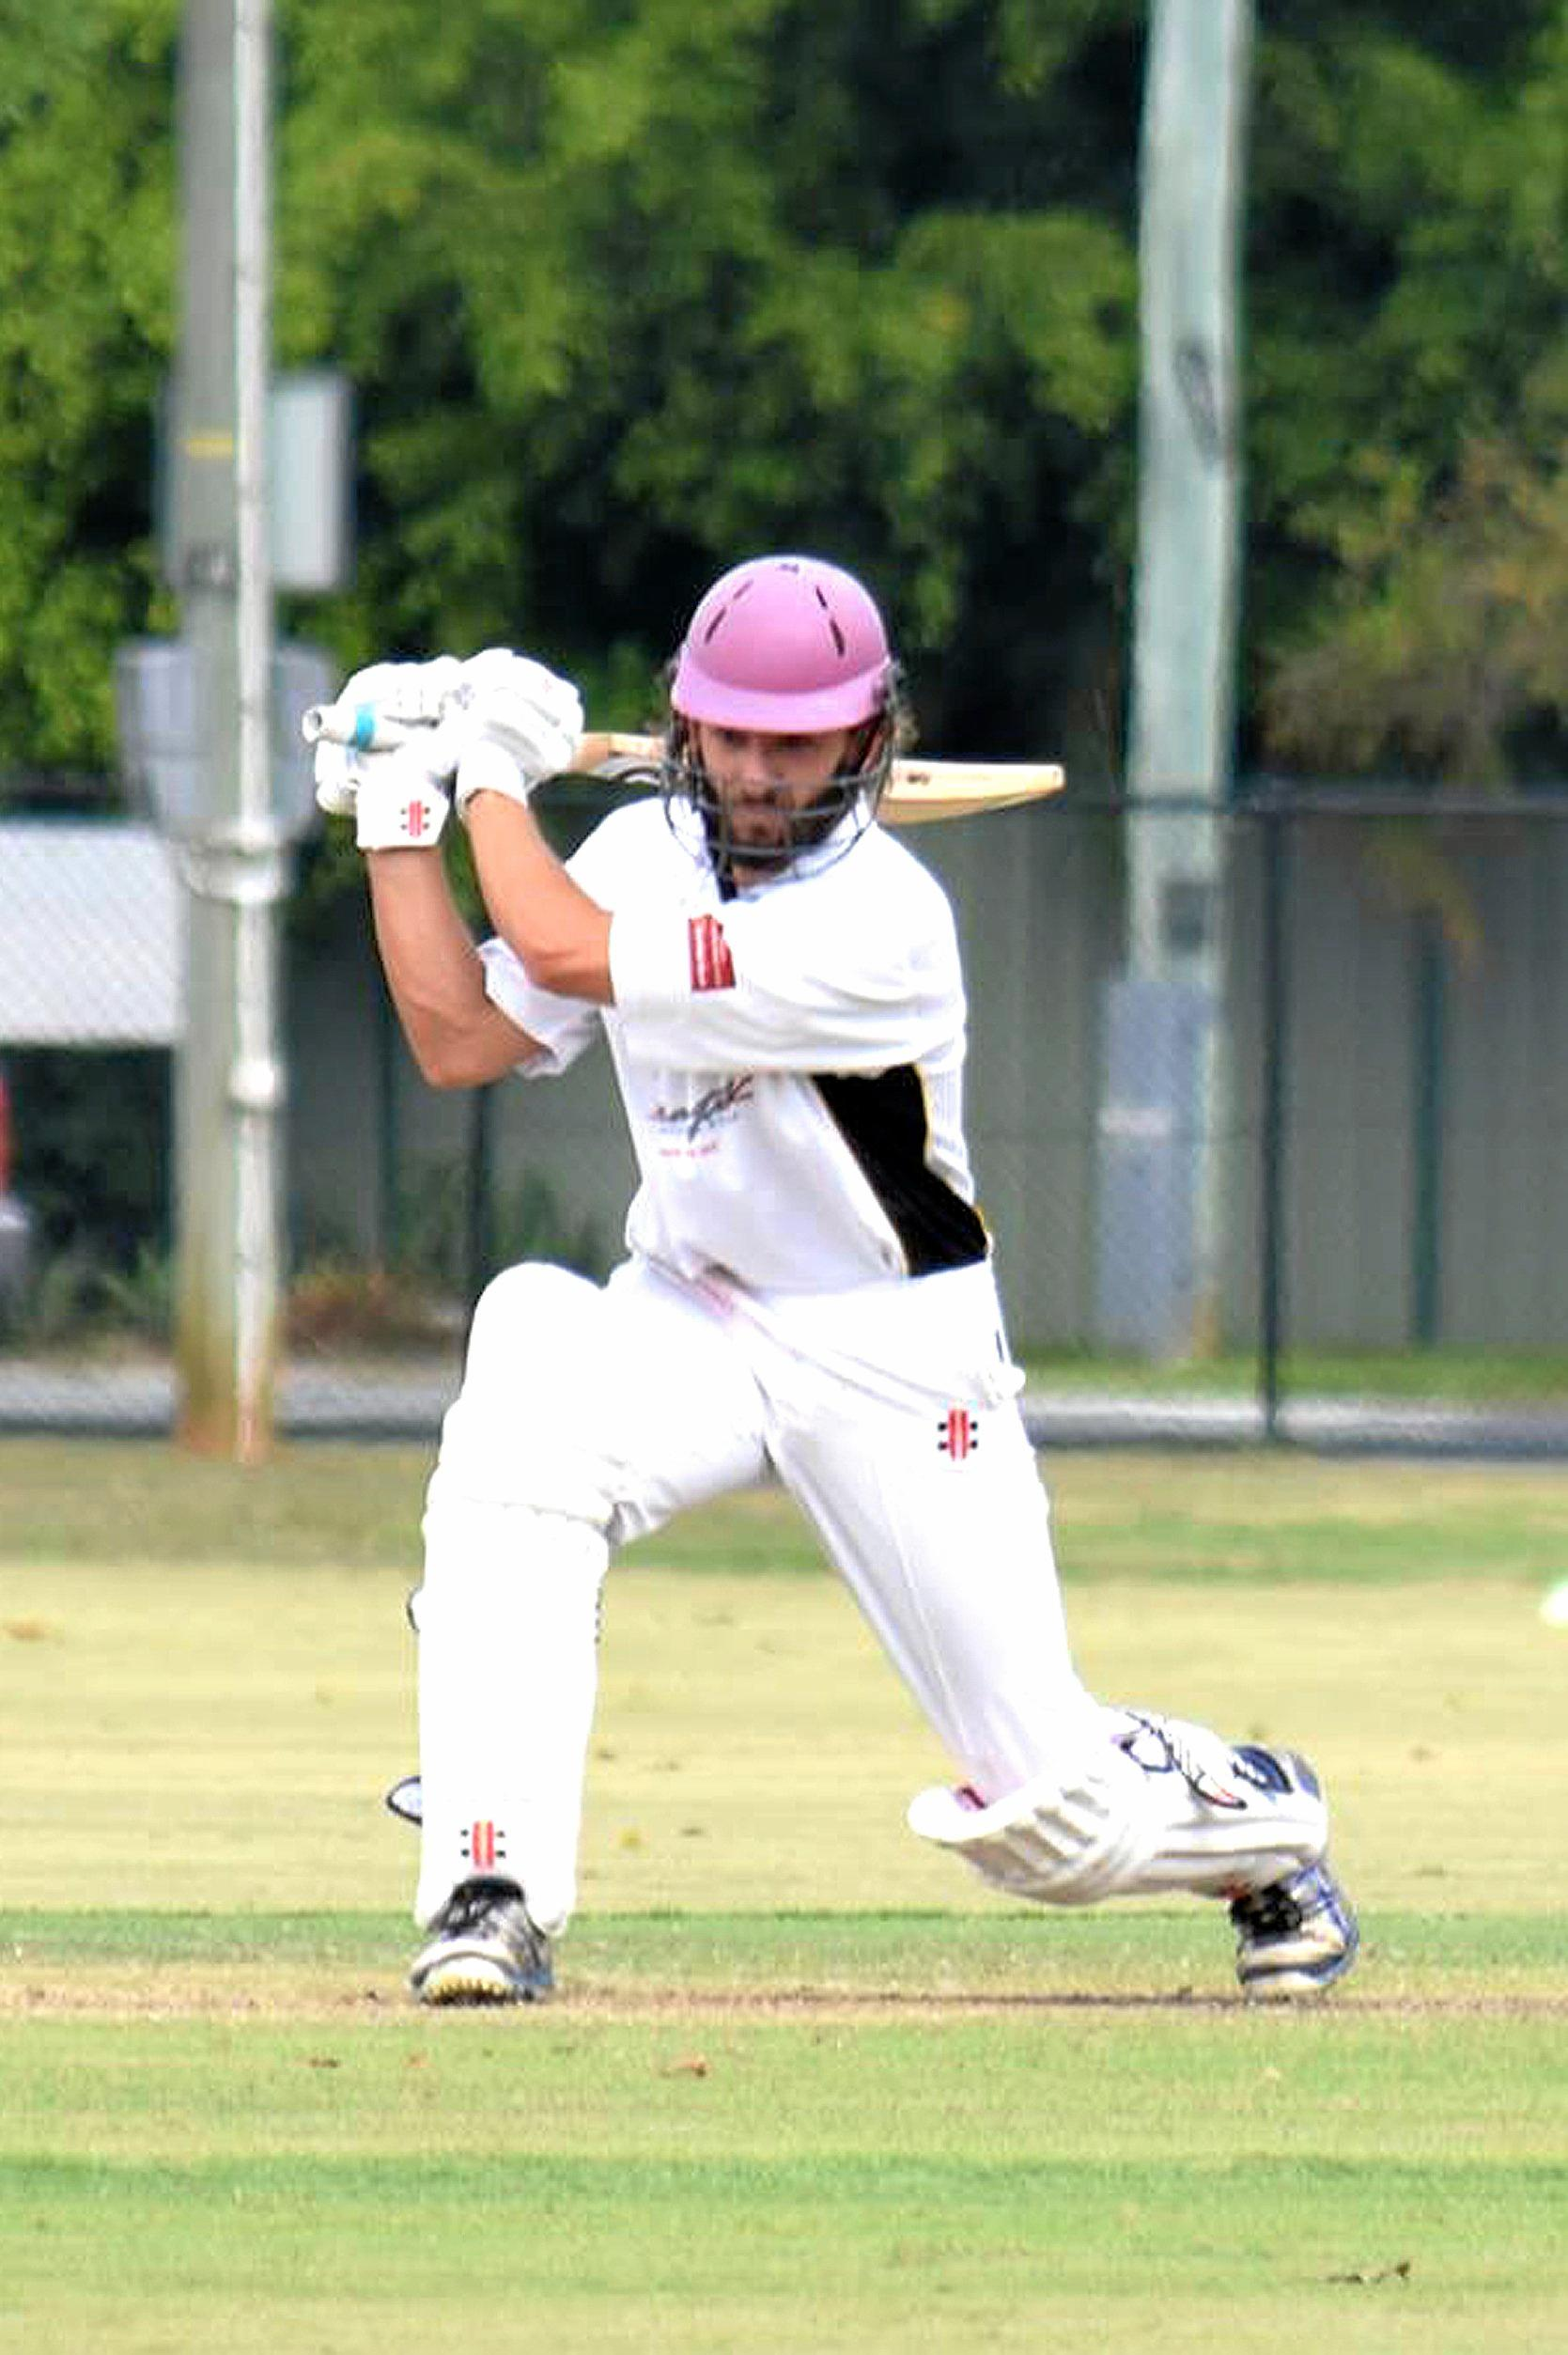 Magpies recruit Alec Townsend playing for Caloundra. Returning from two years out of the game, Townsend had a knock to remember in his Magpies debut on Sunday.